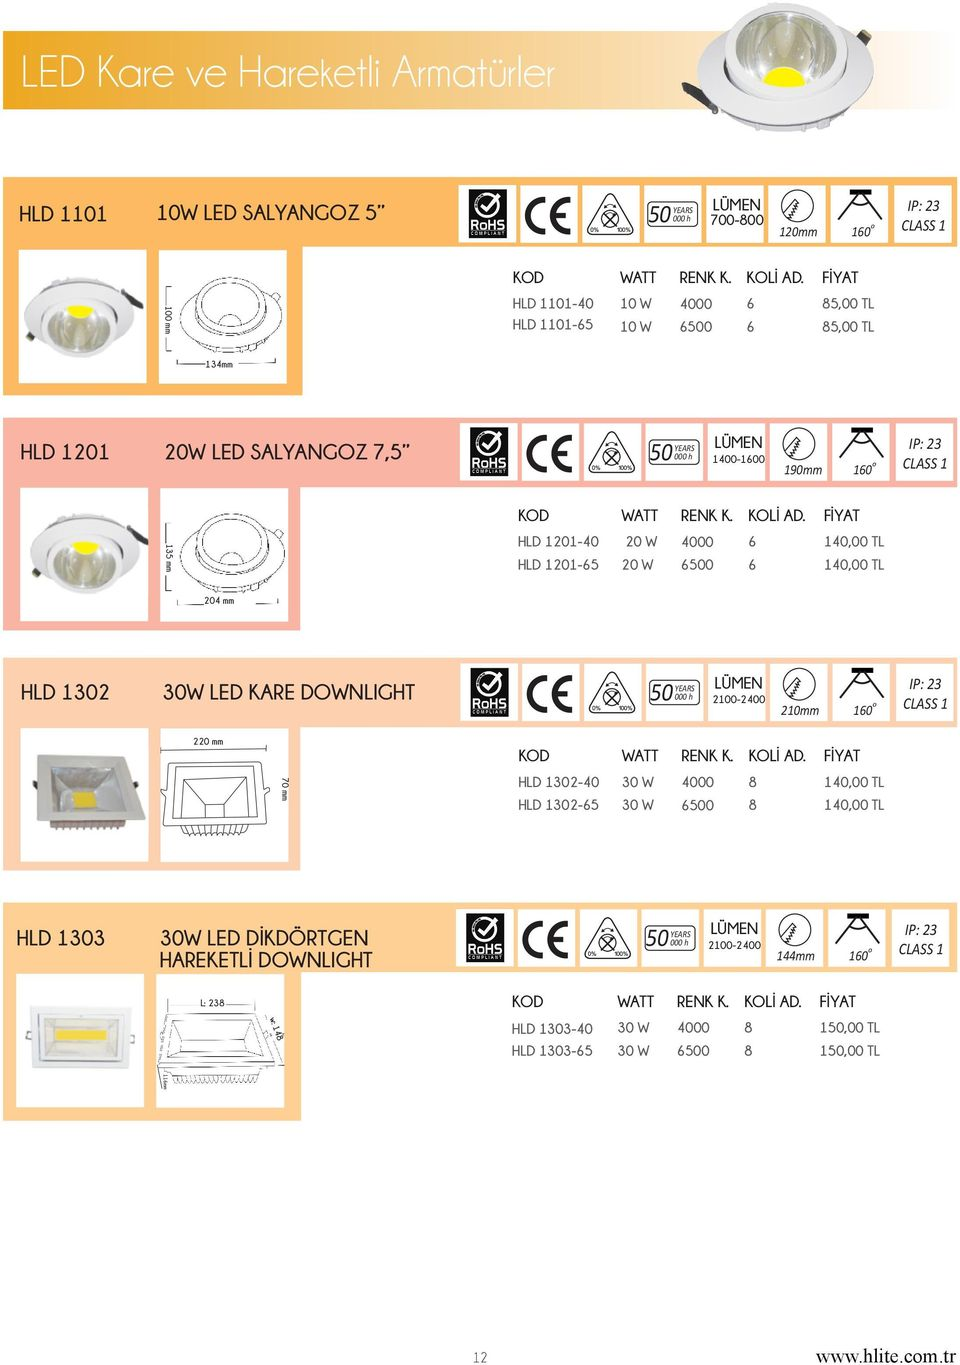 HLD 11- W 00 6 1,00 TL HLD 11-65 W 6 1,00 TL 4 mm HLD 1302 30W LED KARE DOWNLIGHT YEARS 2-210mm 160 IP: 23 CLASS 1 2 mm 70 mm K.